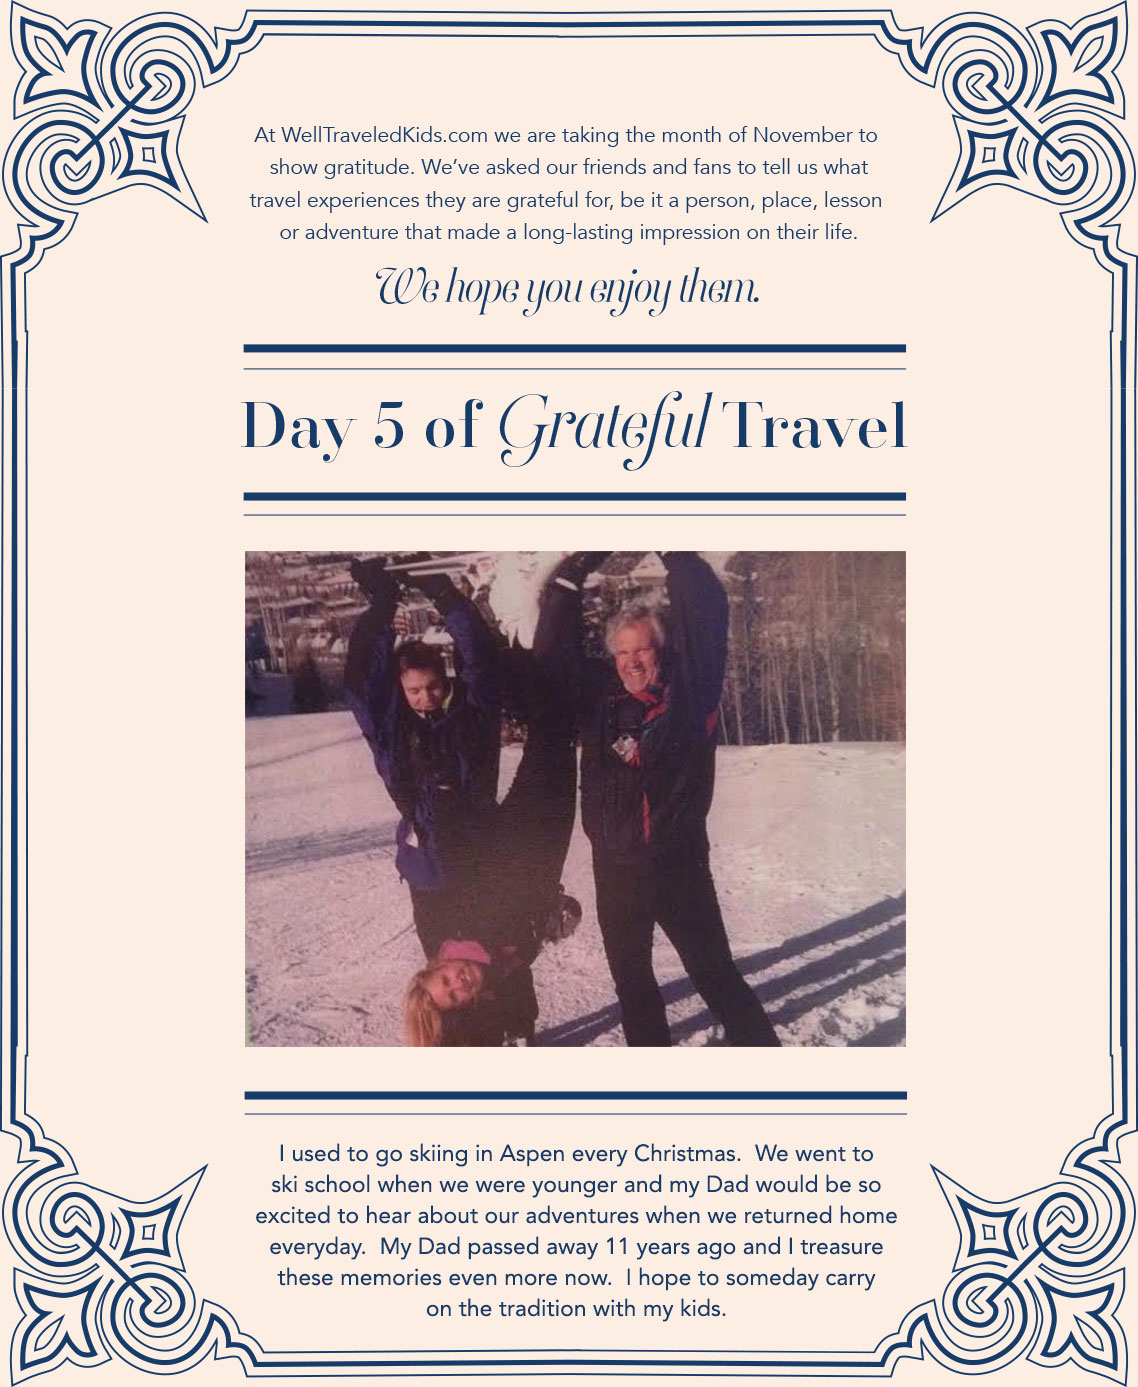 Day_5_GratefulTravel